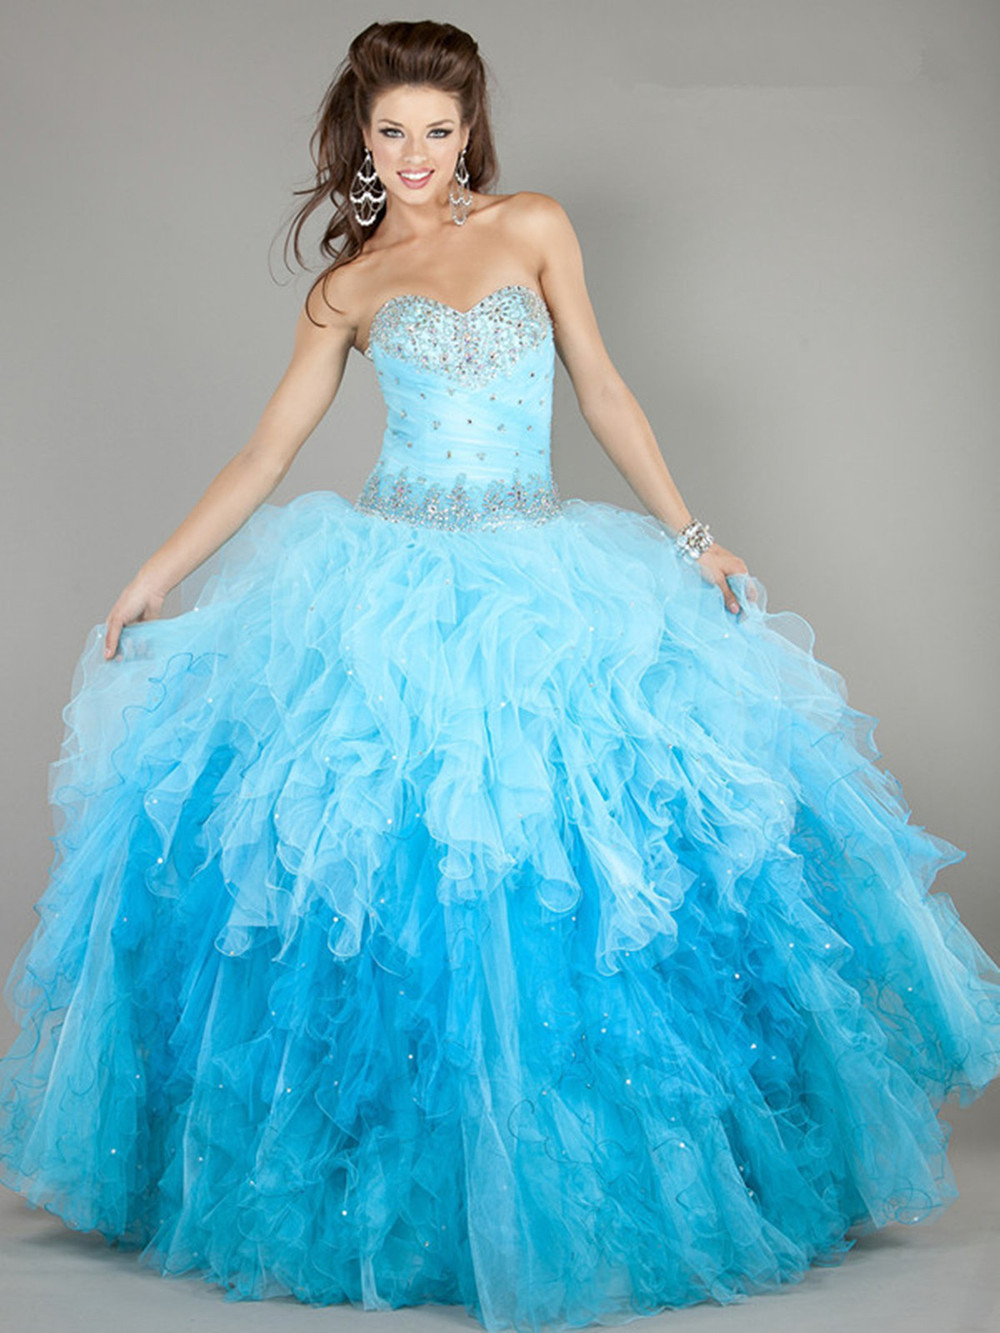 2018 Brand Blue Formal Party Evening Quinceanera Sweetheart Crystal Beading Custom Prom Ball Gown Mother Of The Bride Dresses